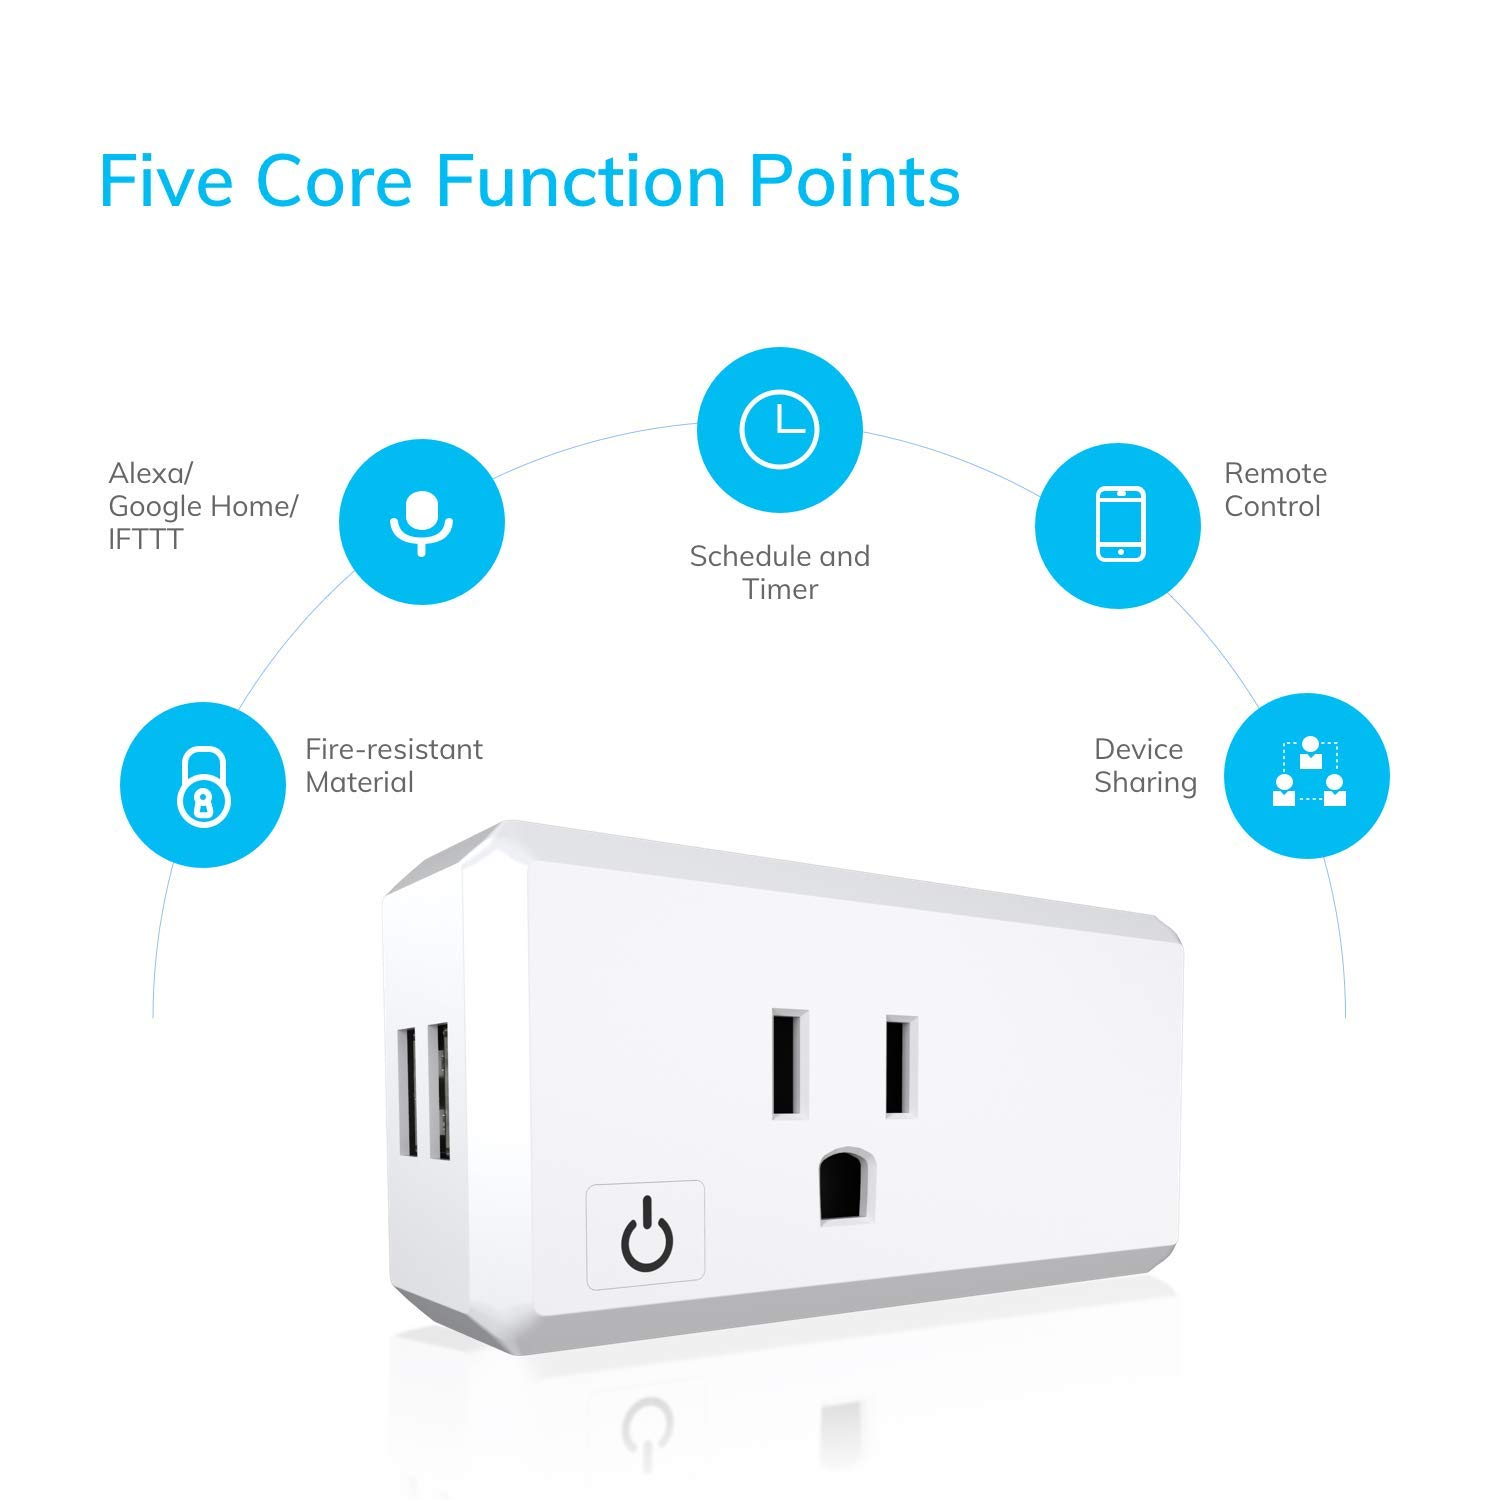 WiFi Smart Plug with 2 USB Ports, Compatible with Alexa Google Home IFTTT, Wonbo USB Mini Wifi Outlet with Timer Function, Remote Control Your Home Appliances from Anywhere, No Hub Required